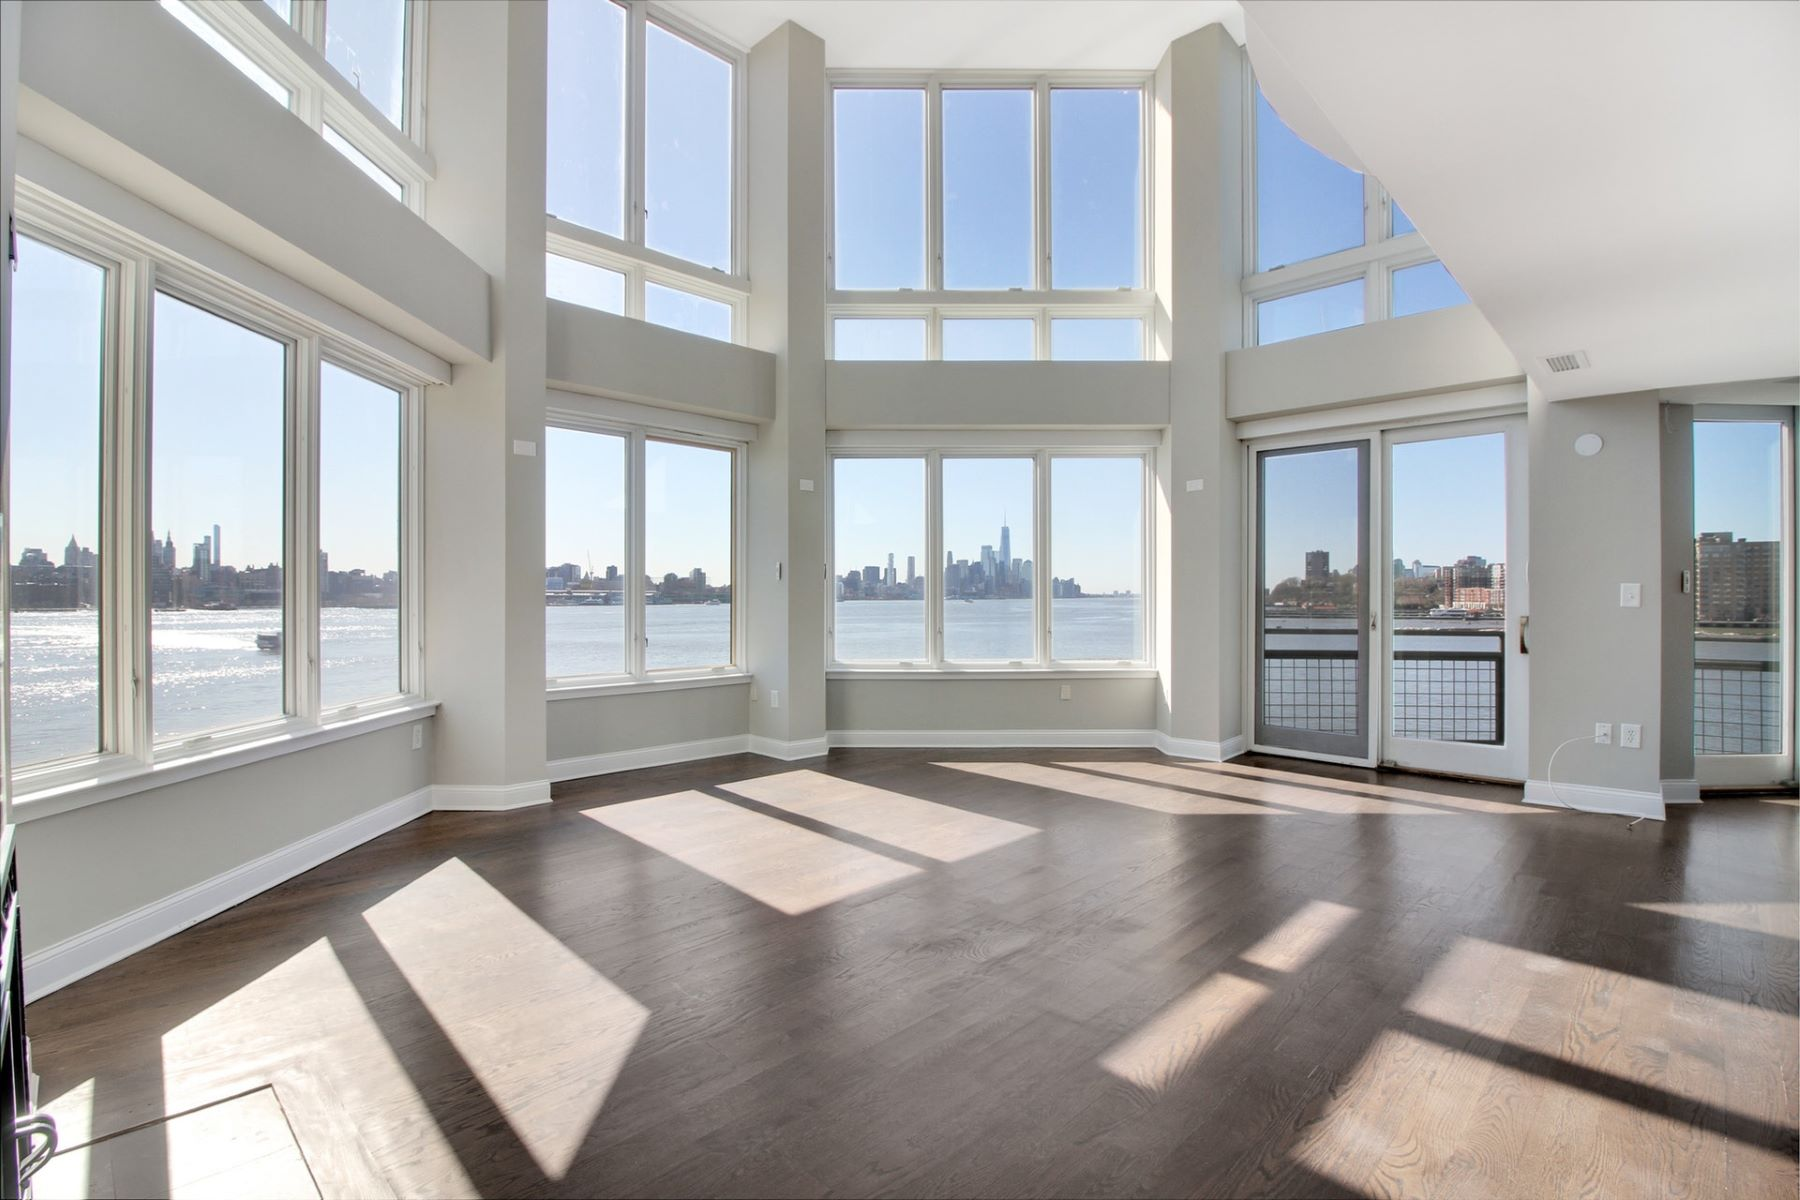 Condominium for Active at Welcome Home to This Beautiful, Sun-Filled 3 Bedroom / 3 Bathroom Condo 600 Harbor Blvd #1070 Weehawken, New Jersey 07086 United States